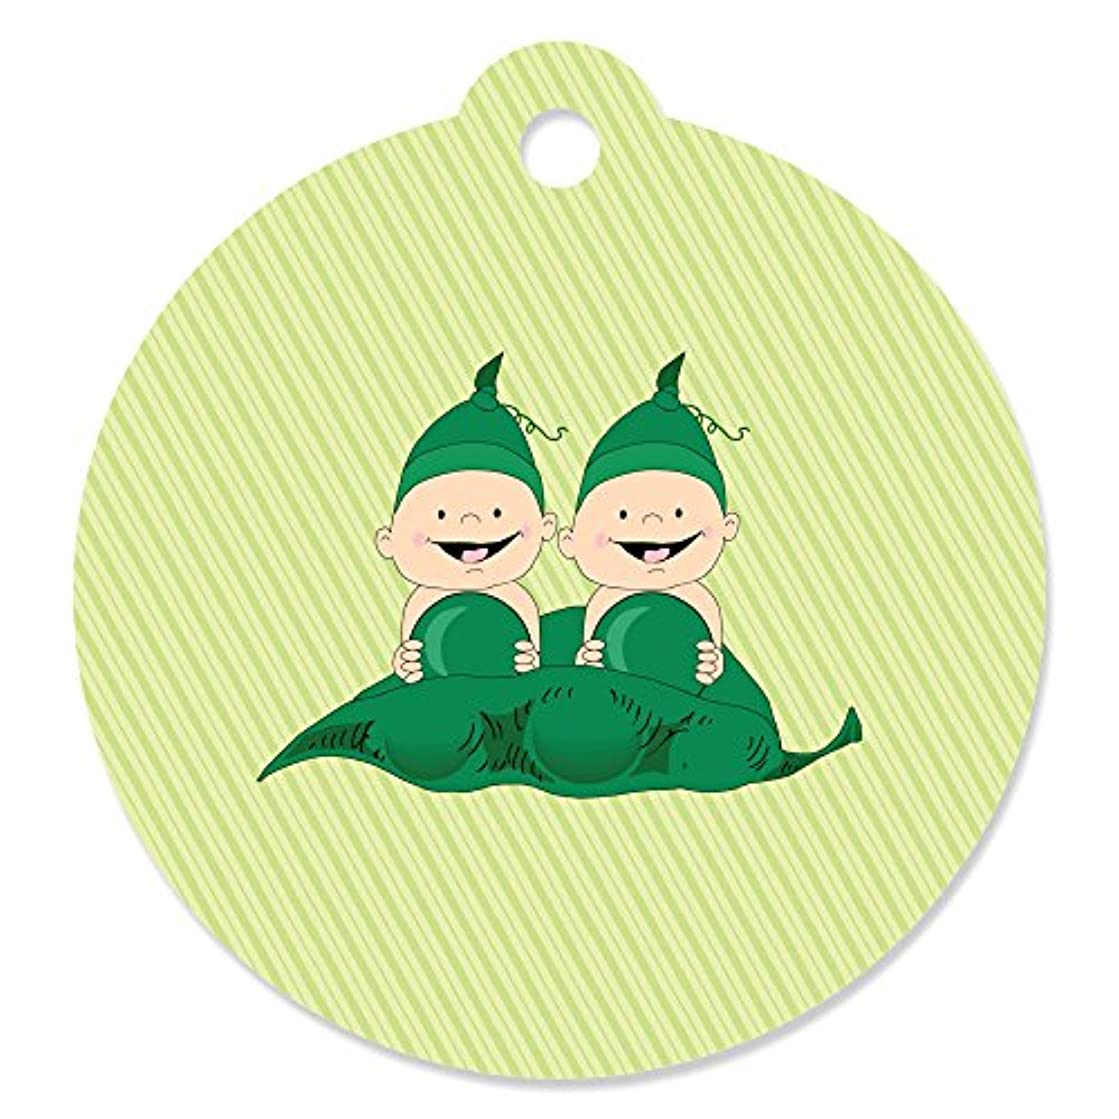 Twins Two Peas in a Pod Caucasian - Baby Shower or Birthday Party Favor Gift Tags (Set of 20)